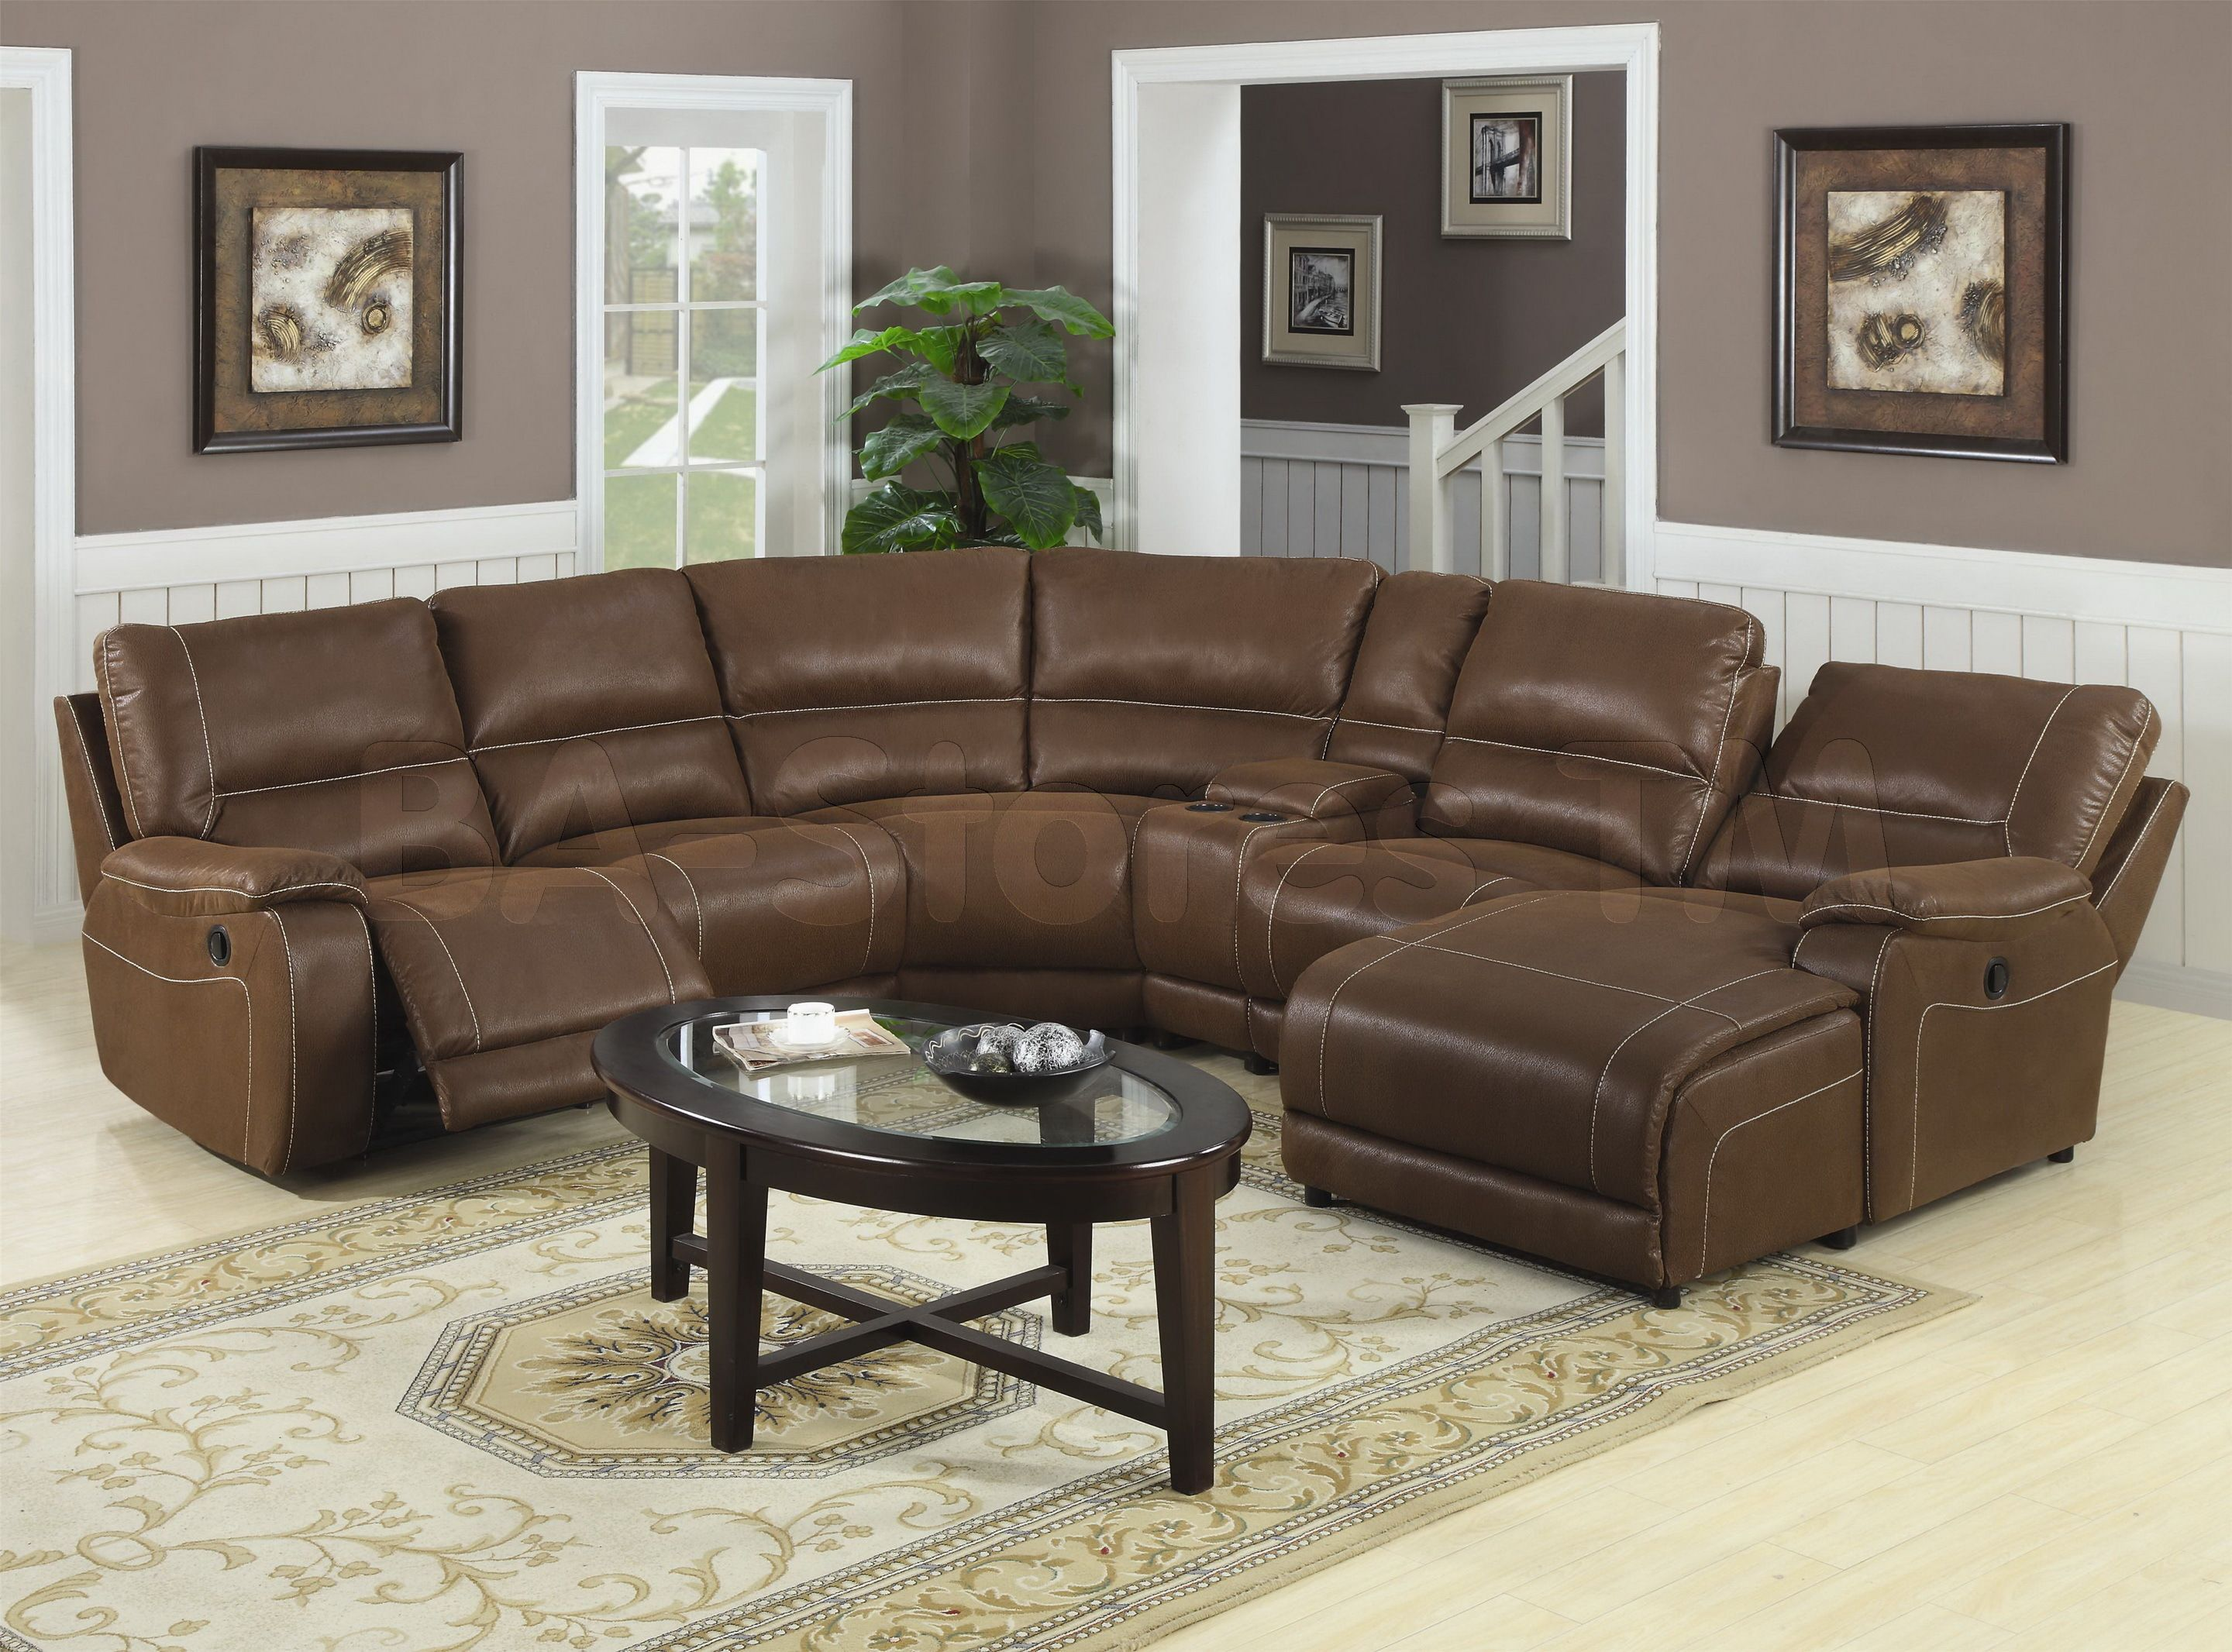 living room sectionals with photo and painting also decorative plant rh pinterest com